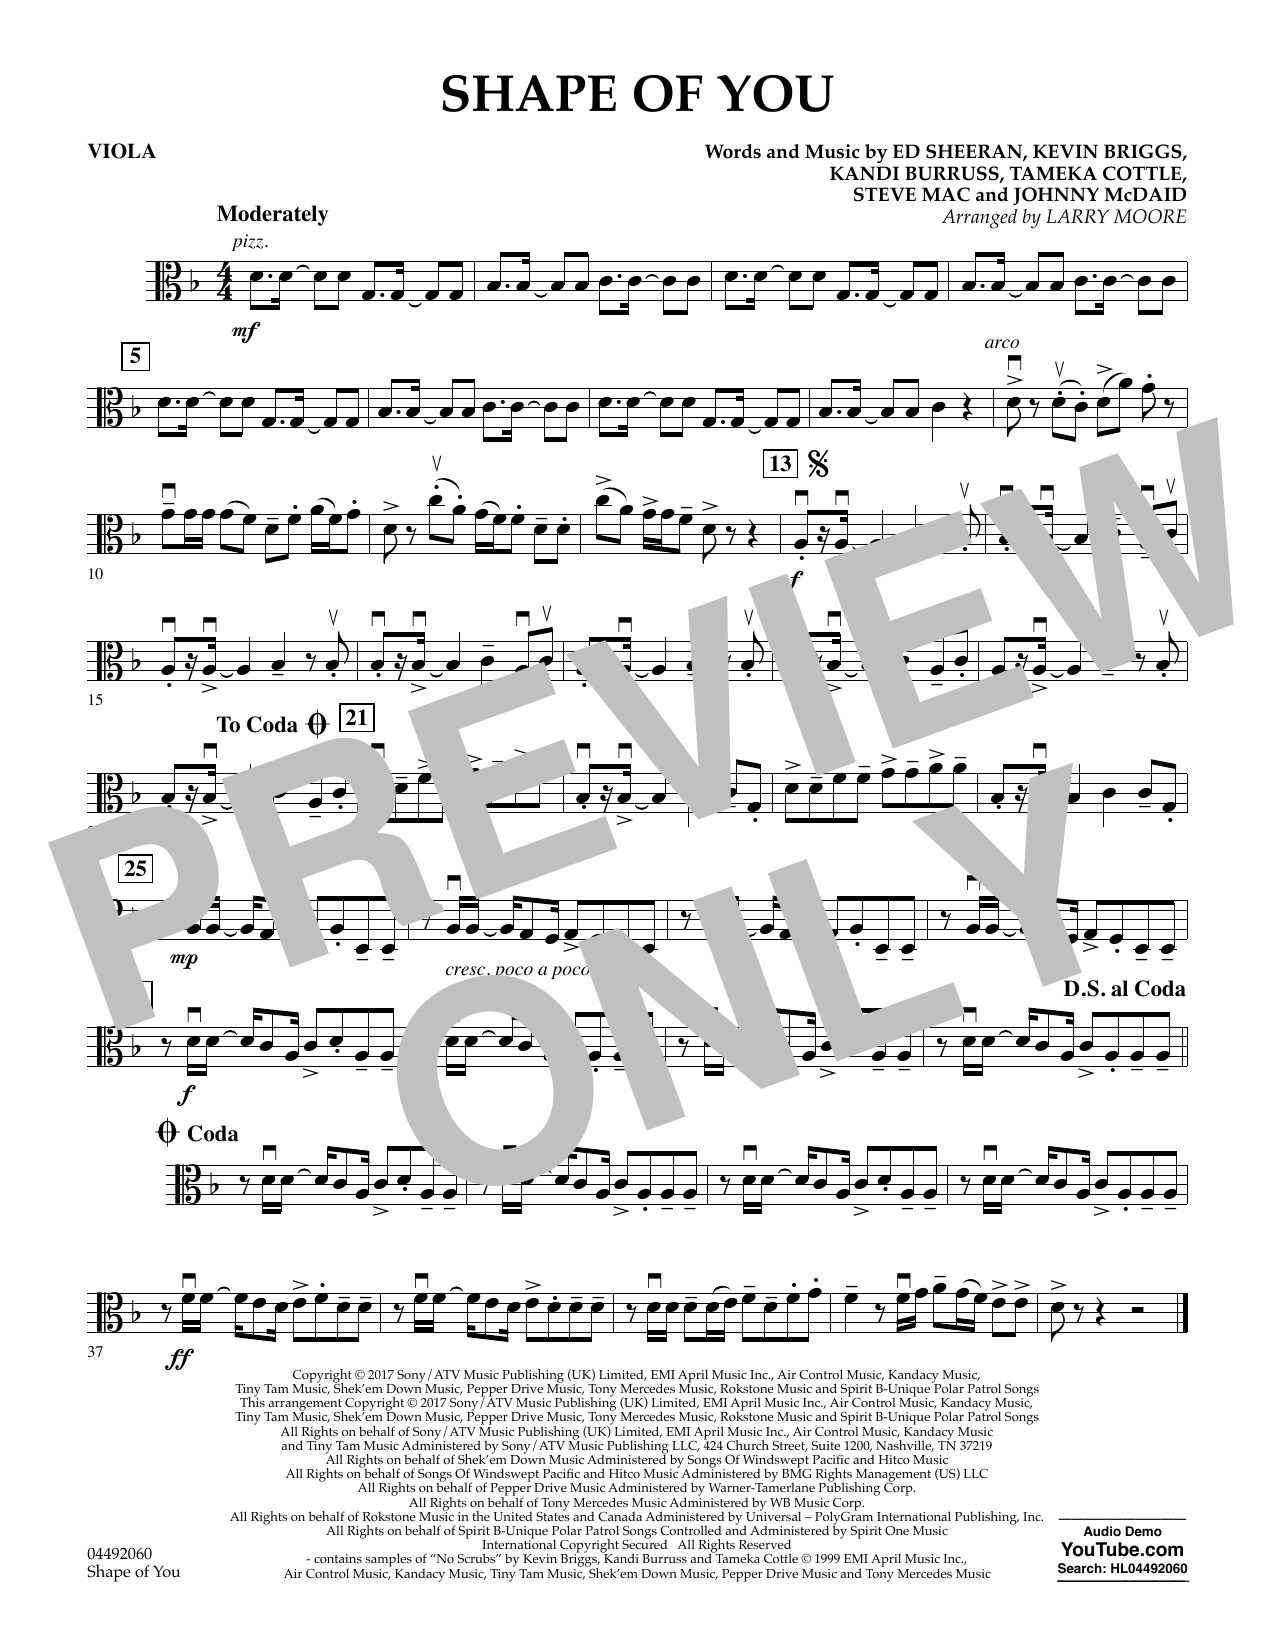 Larry Moore Shape of You - Viola sheet music notes and chords. Download Printable PDF.